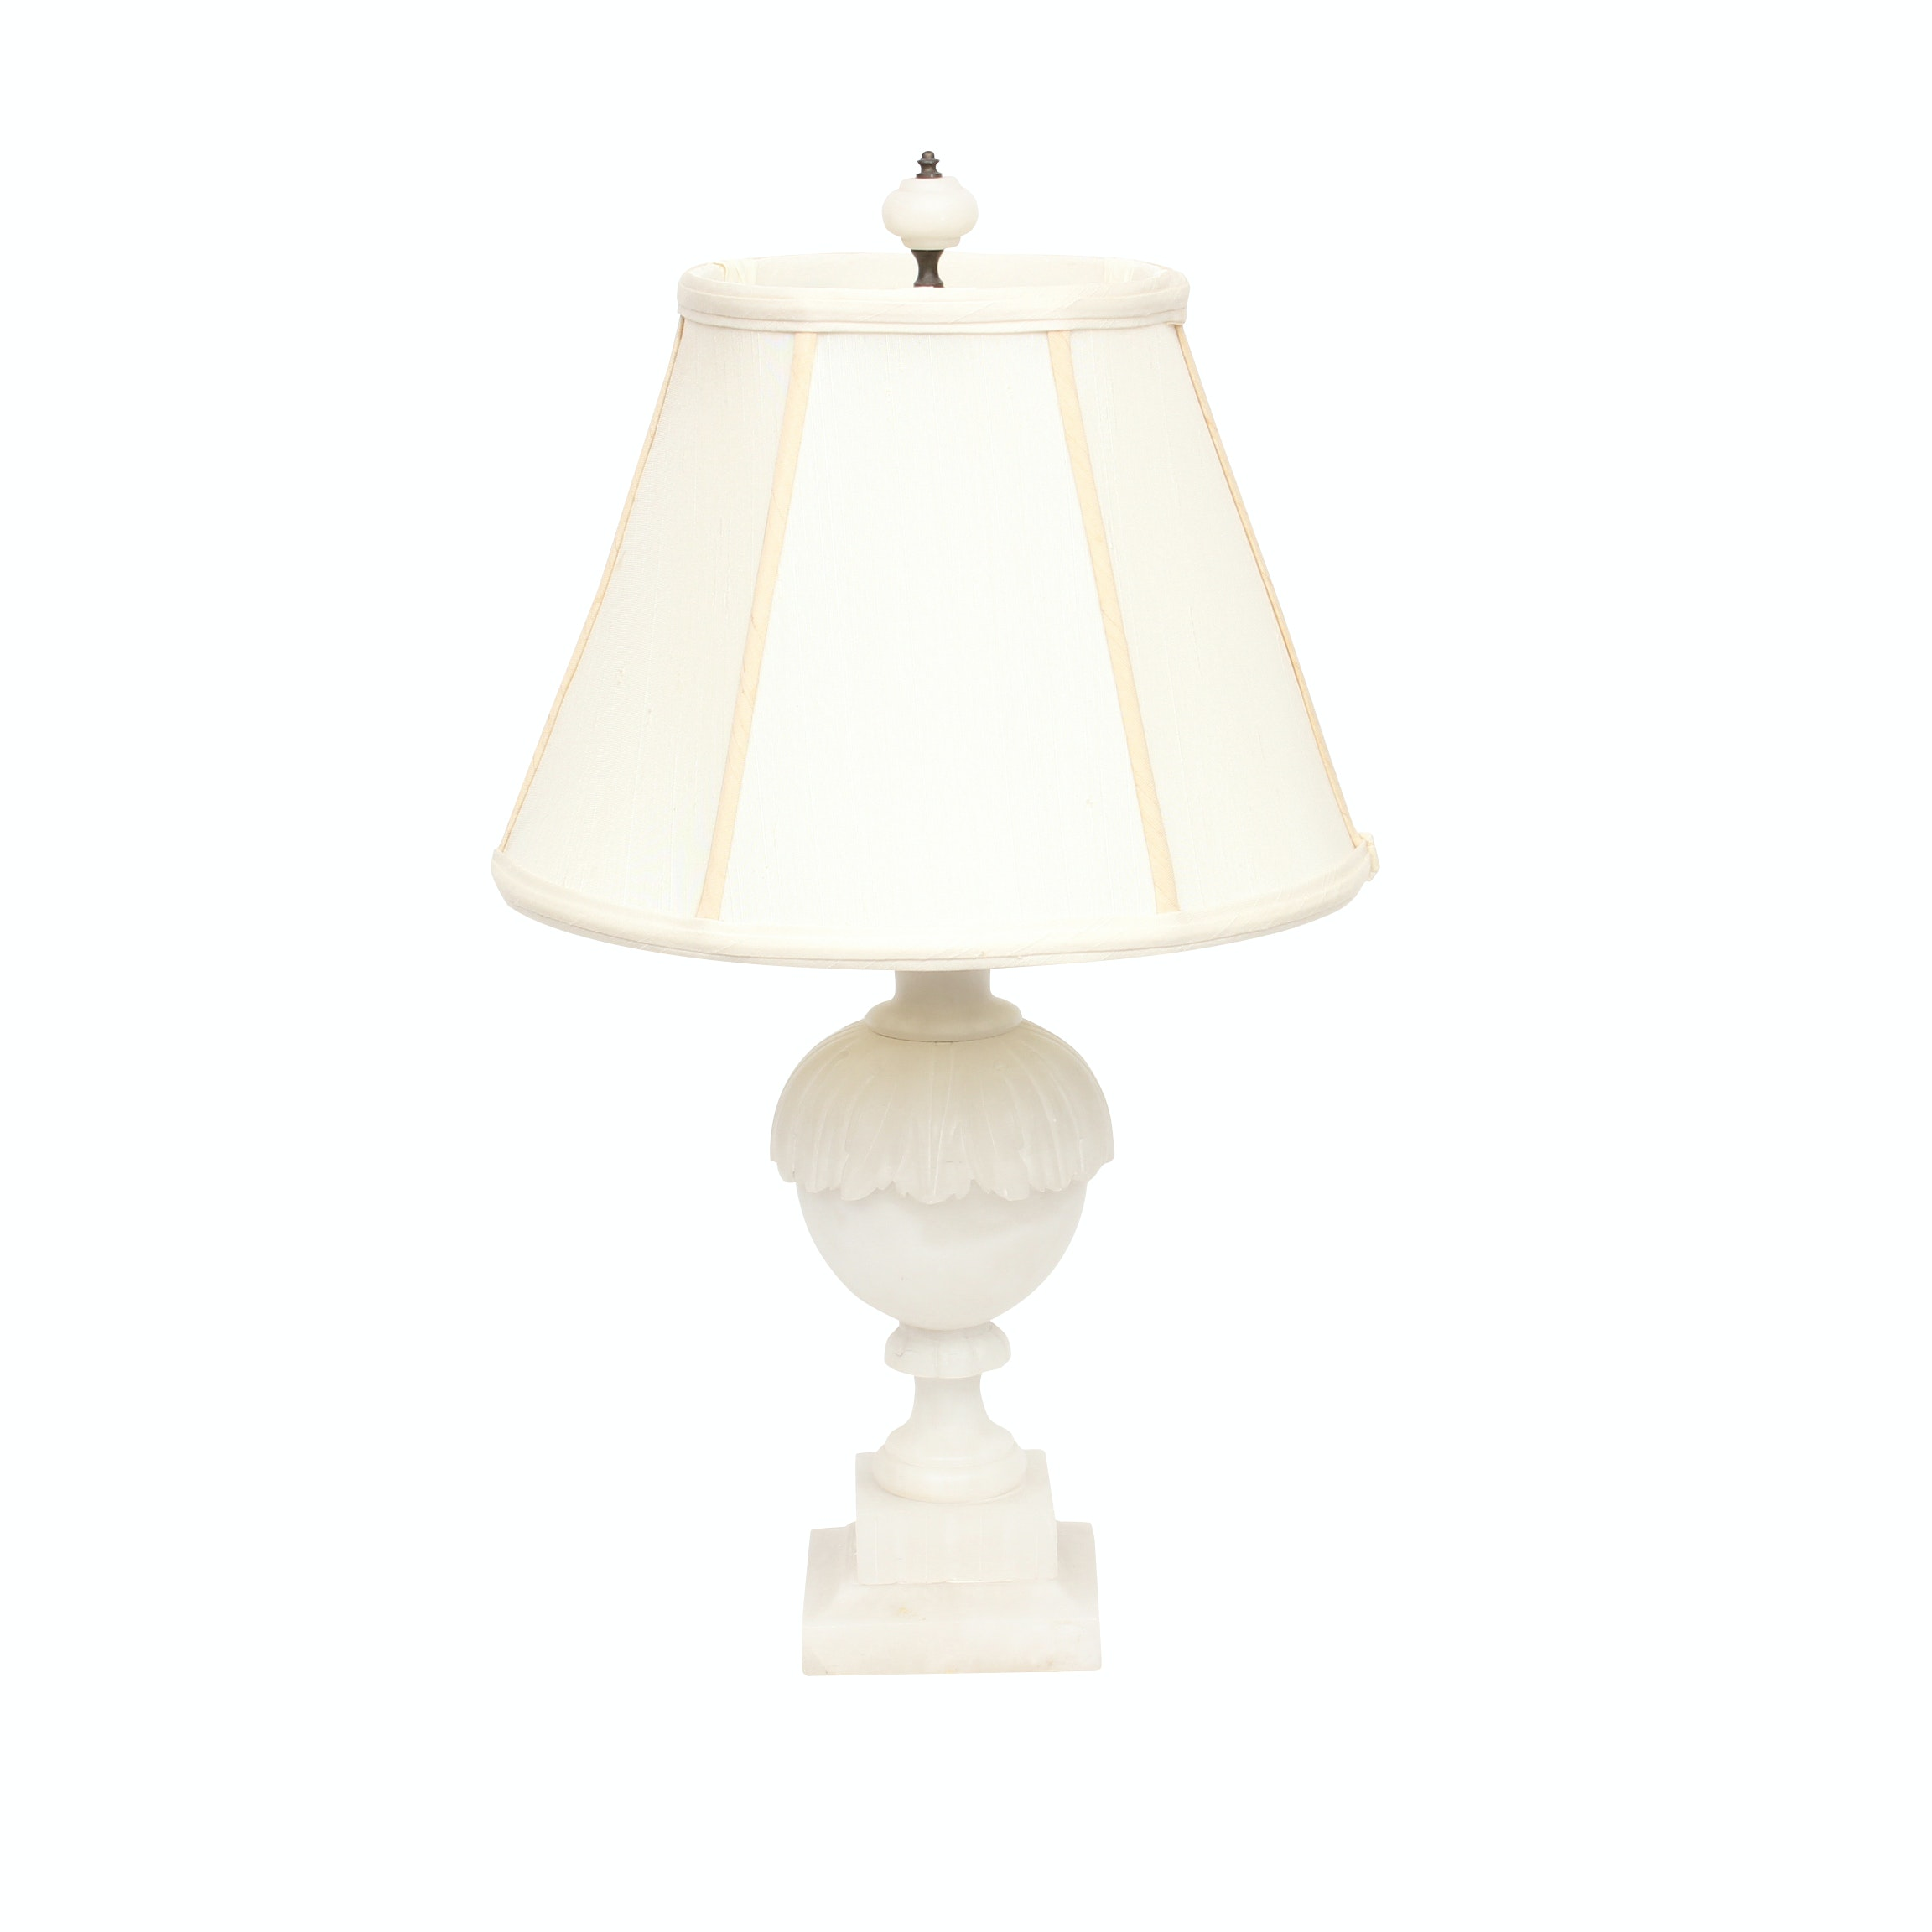 Carved Marble Table Lamp, Early to Mid 20th Century